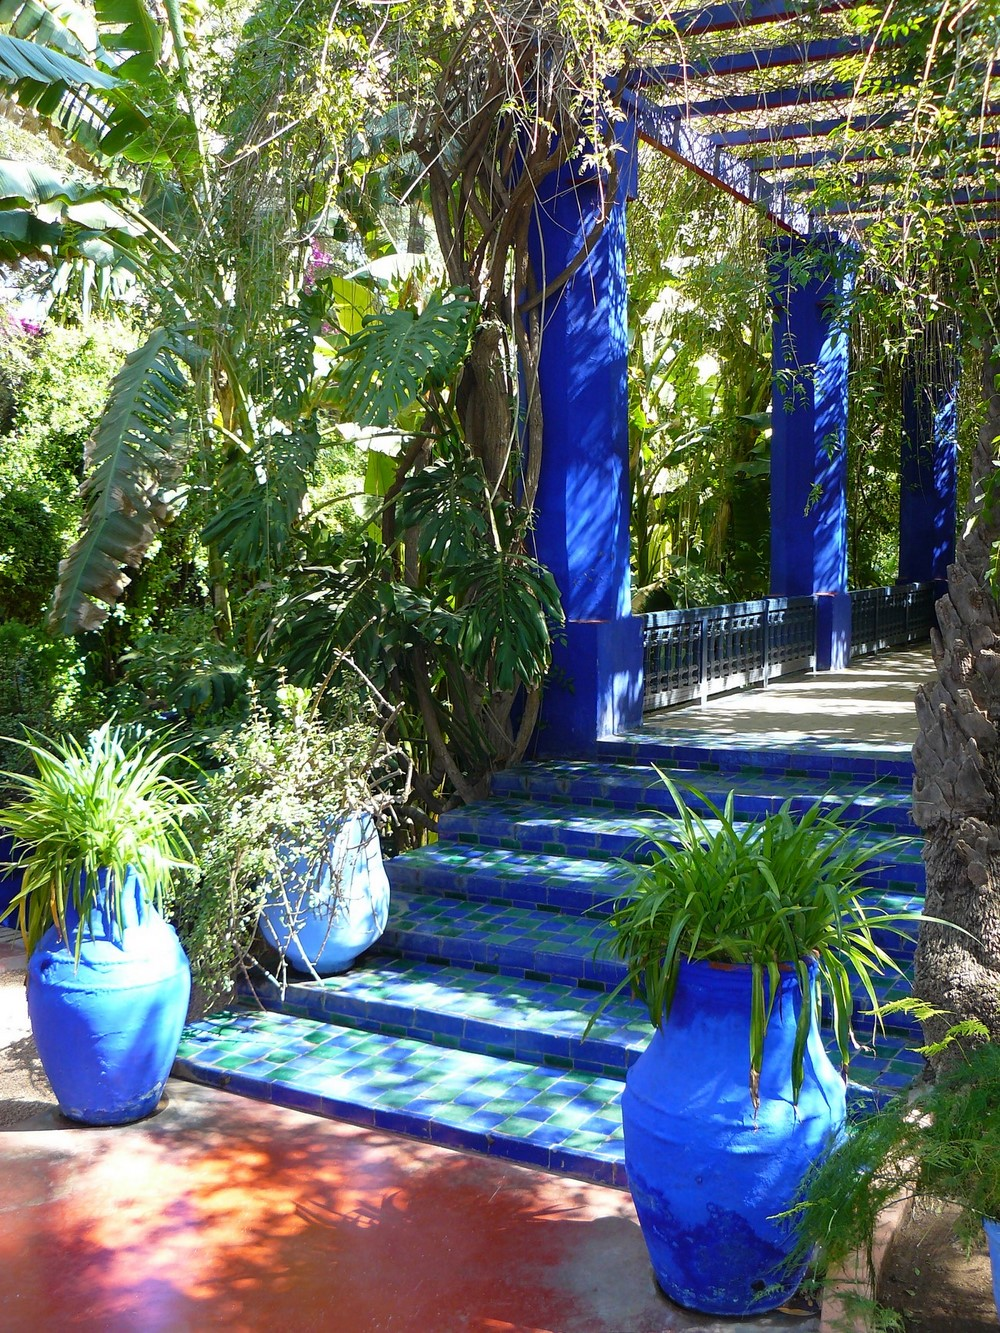 marrakech 10 photos envo tantes du jardin majorelle blog ok voyage. Black Bedroom Furniture Sets. Home Design Ideas